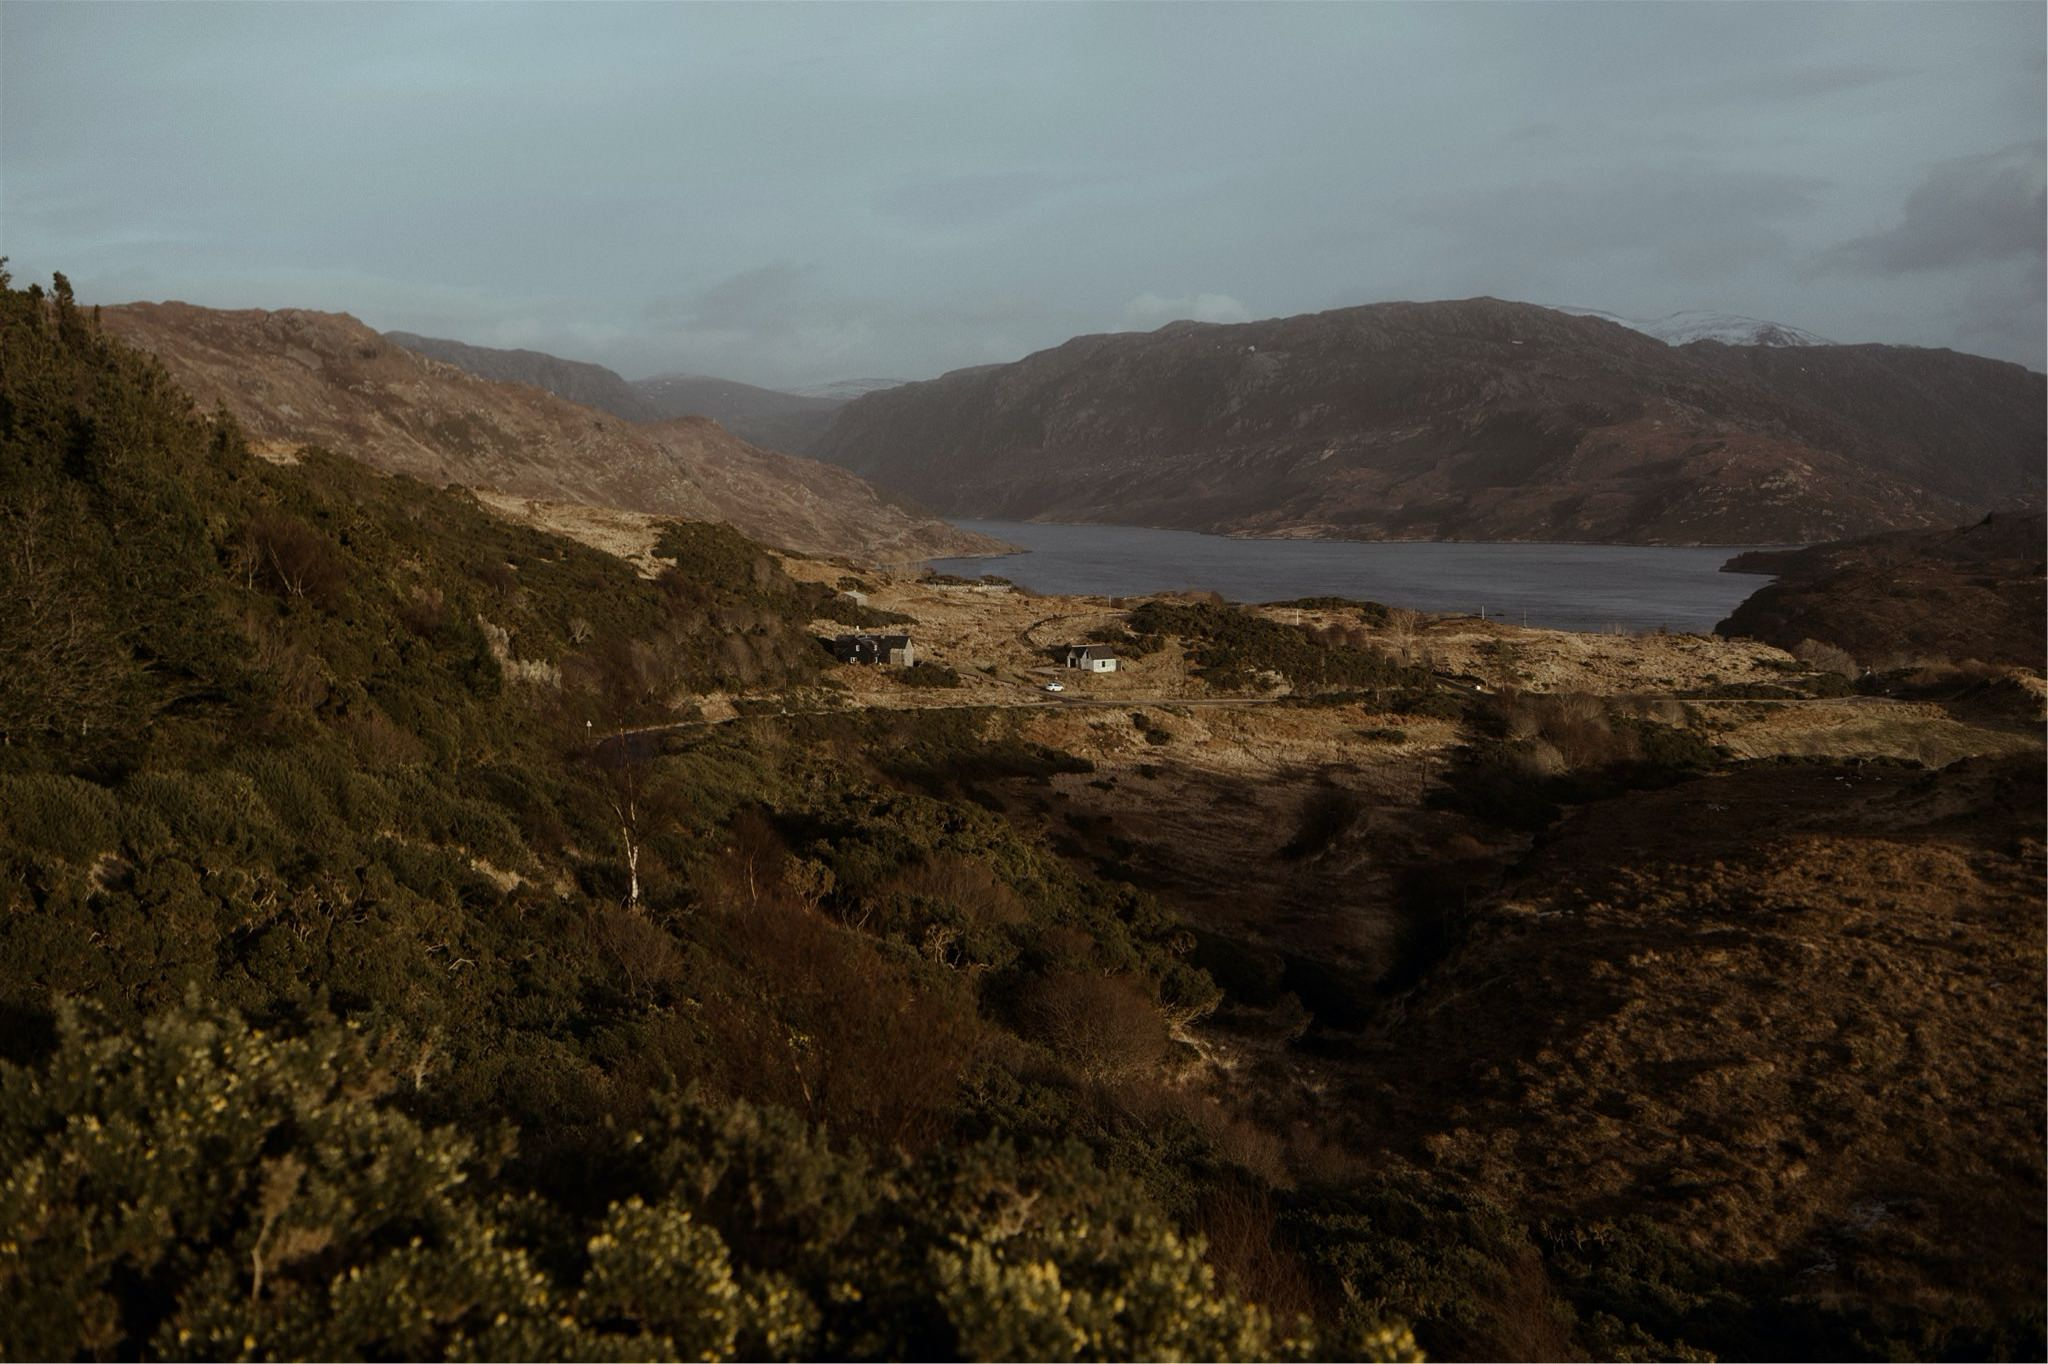 View of hills, cottage and loch in Assynt, Scotland